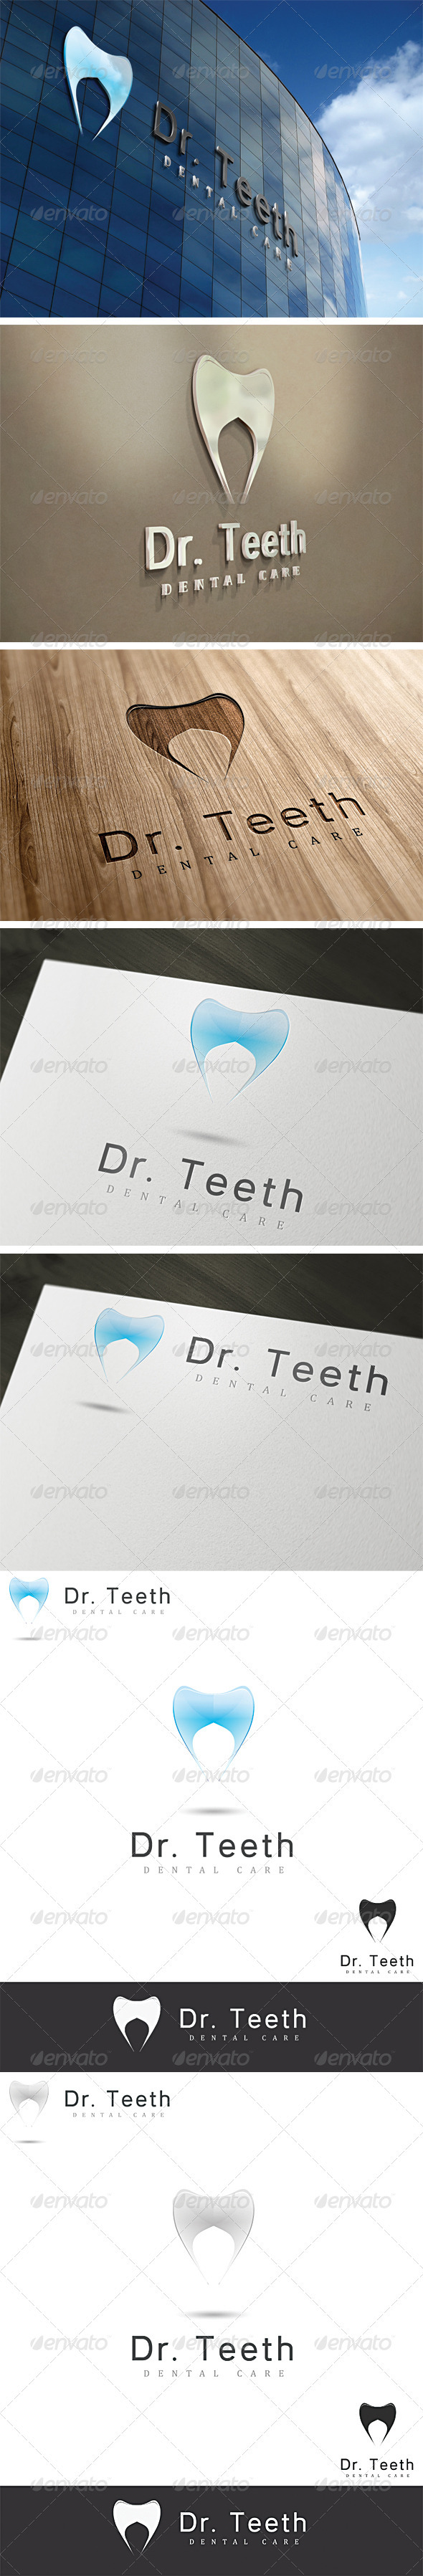 GraphicRiver Dr Teeth Dental Logo Template 2606351